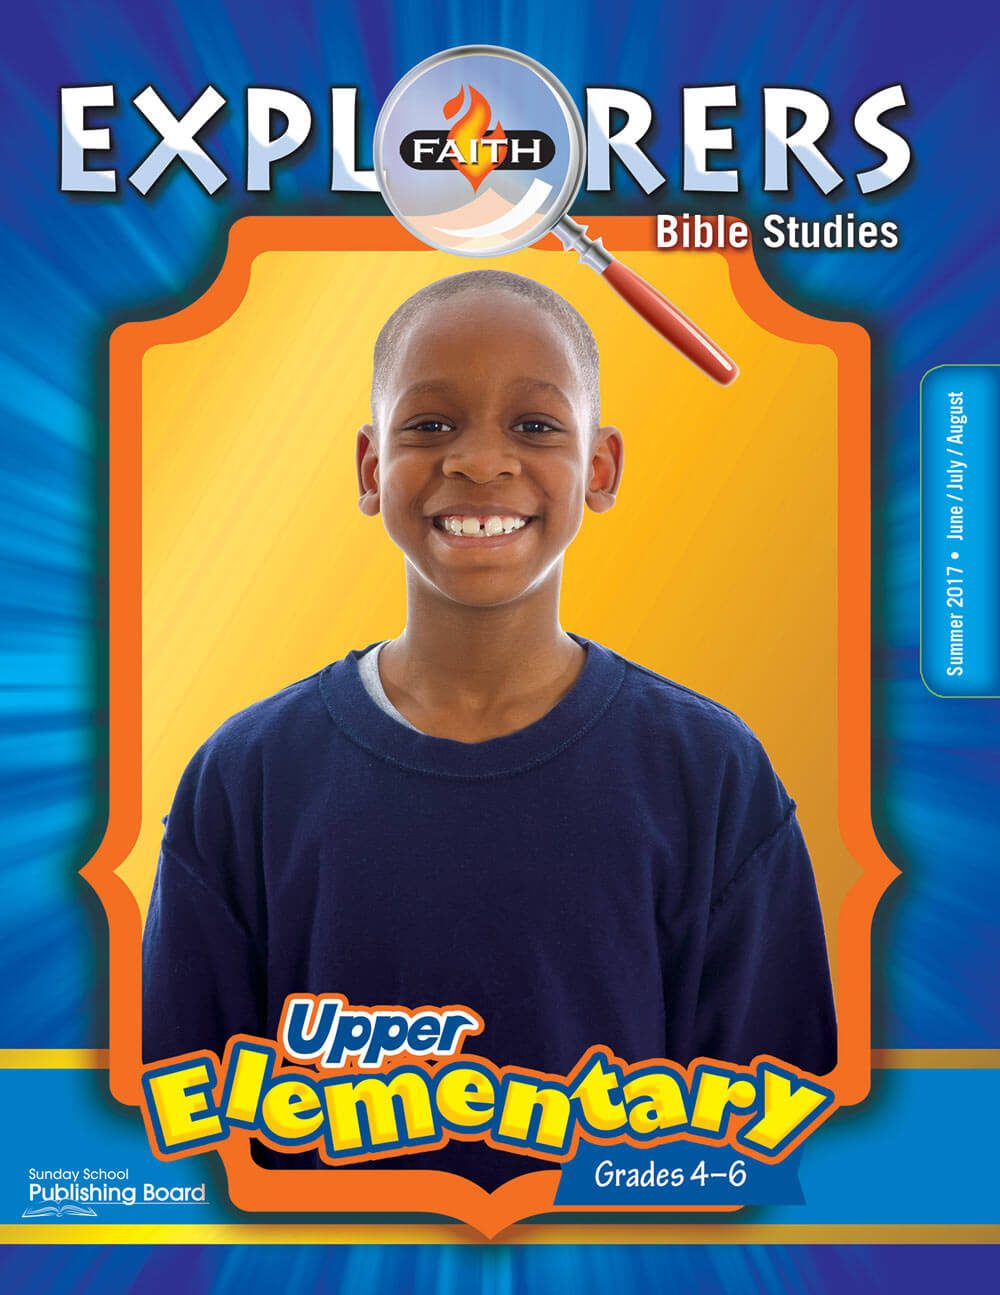 Faith Explorers Bible Studies for Upper Elementary Students (Summer 2017)–Digital Edition